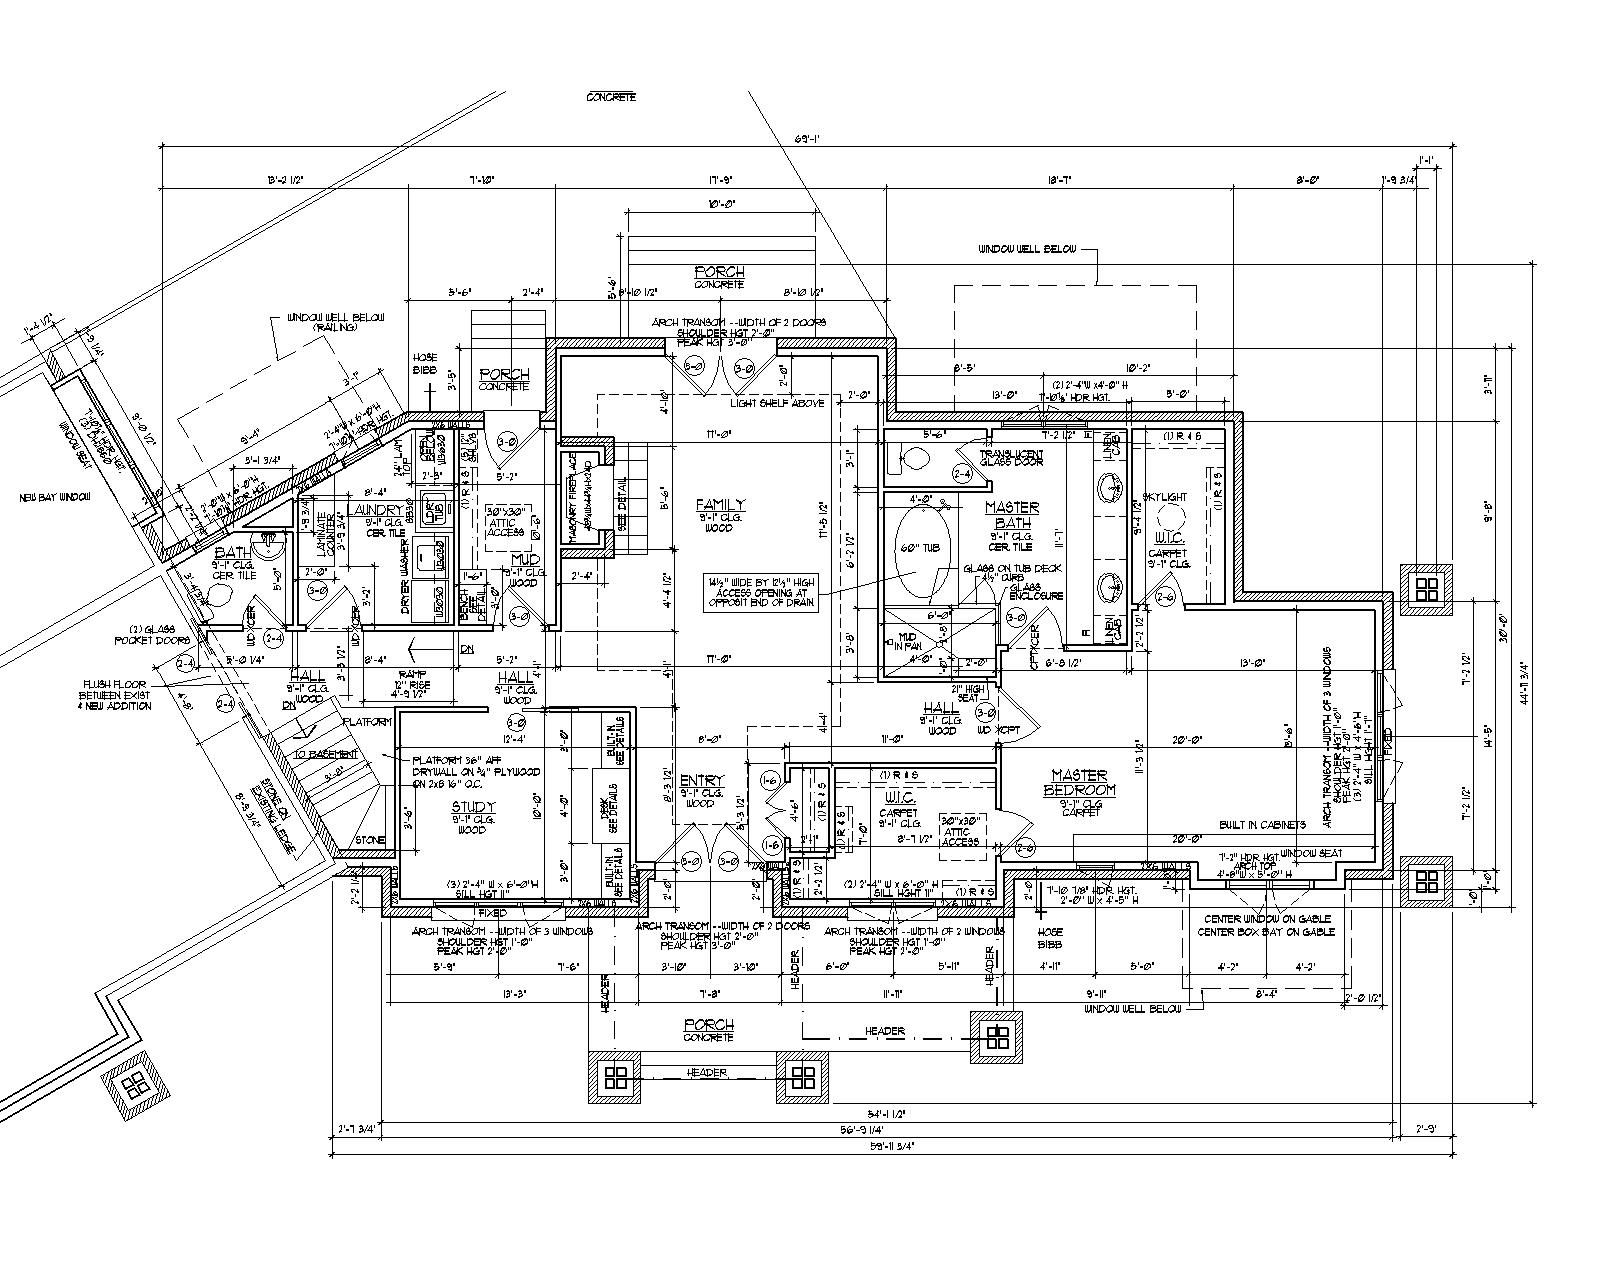 2d autocad house plans residential building drawings cad Building plan printing